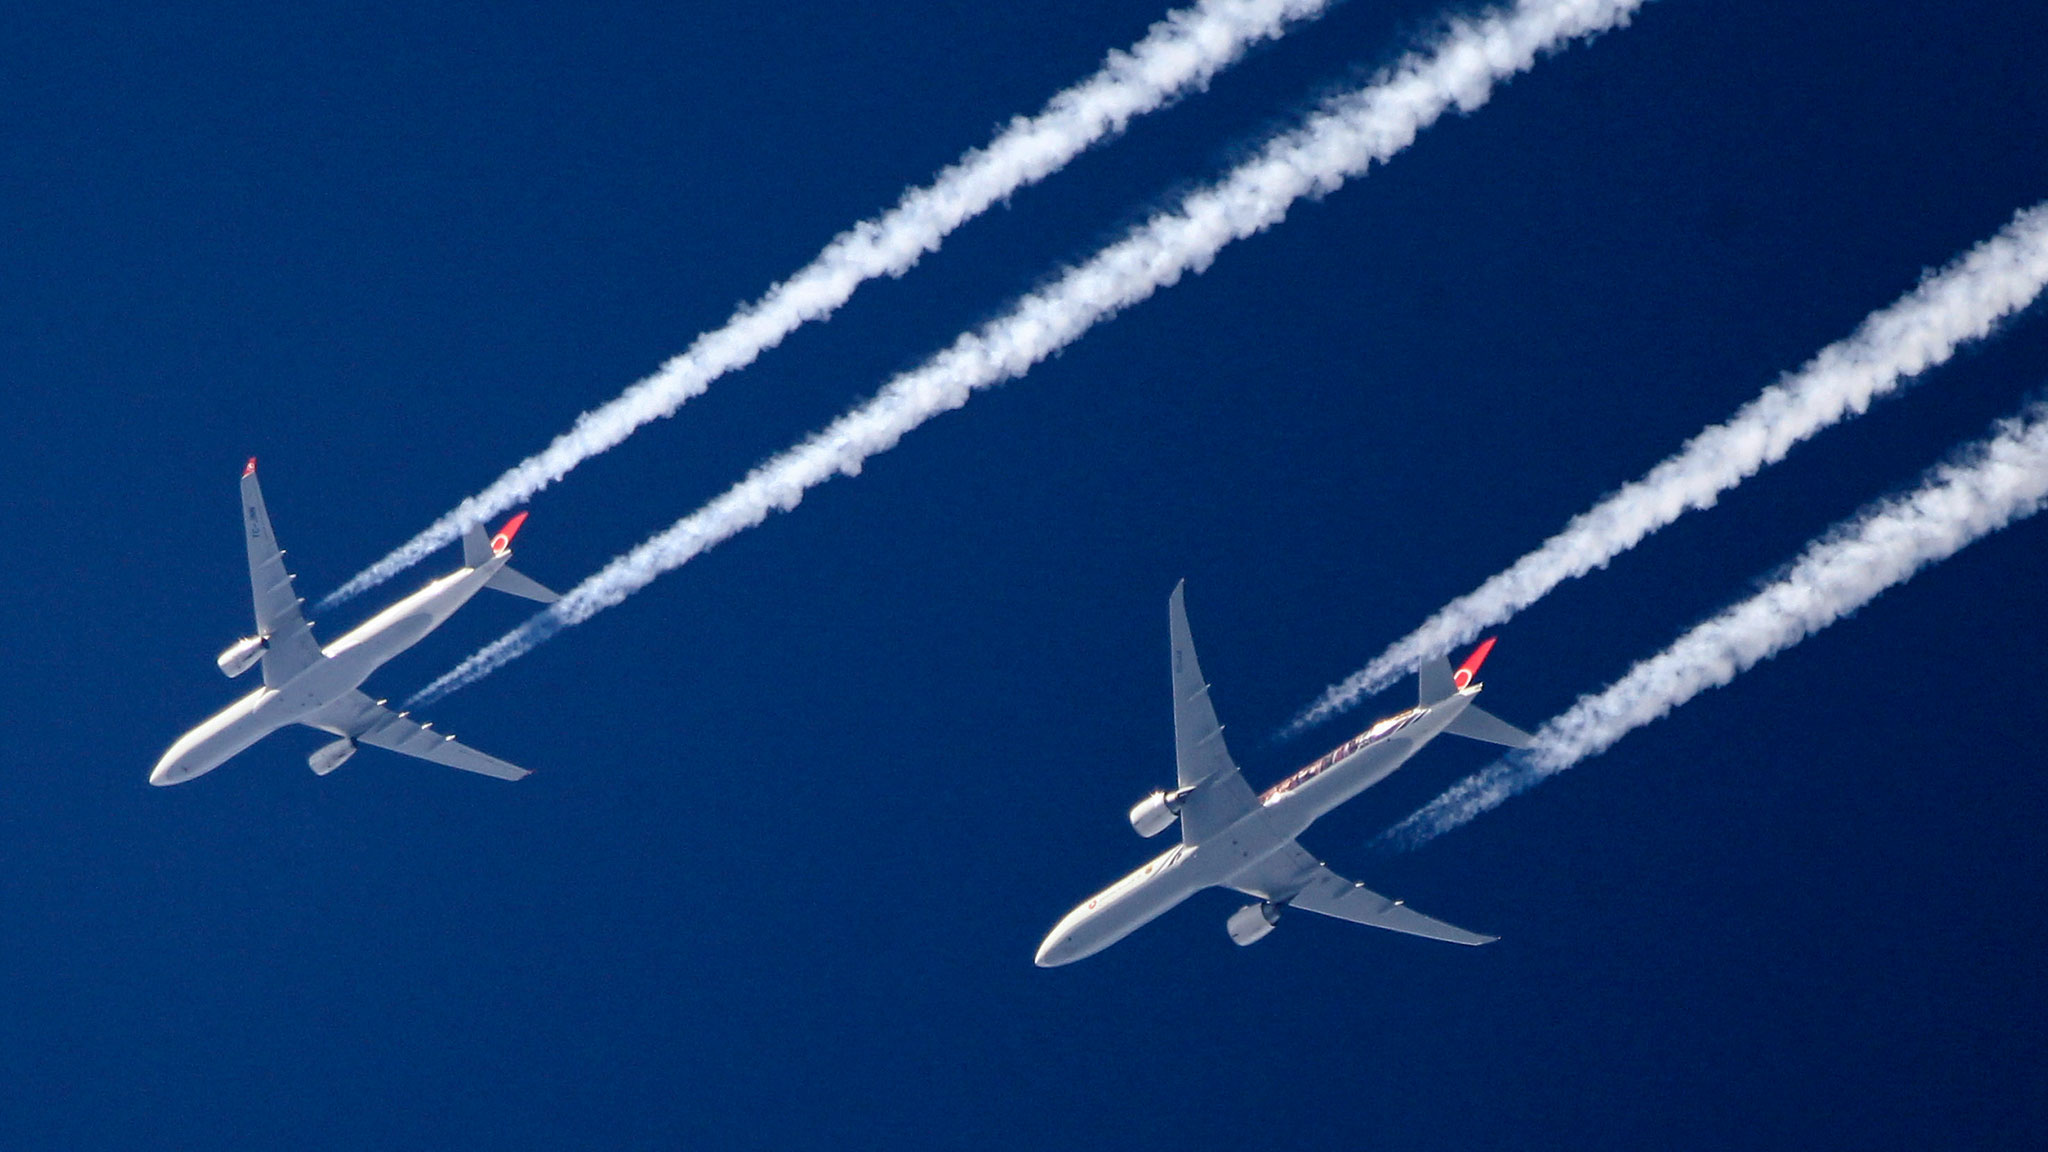 Flight shame: can airlines ever reduce their emissions?